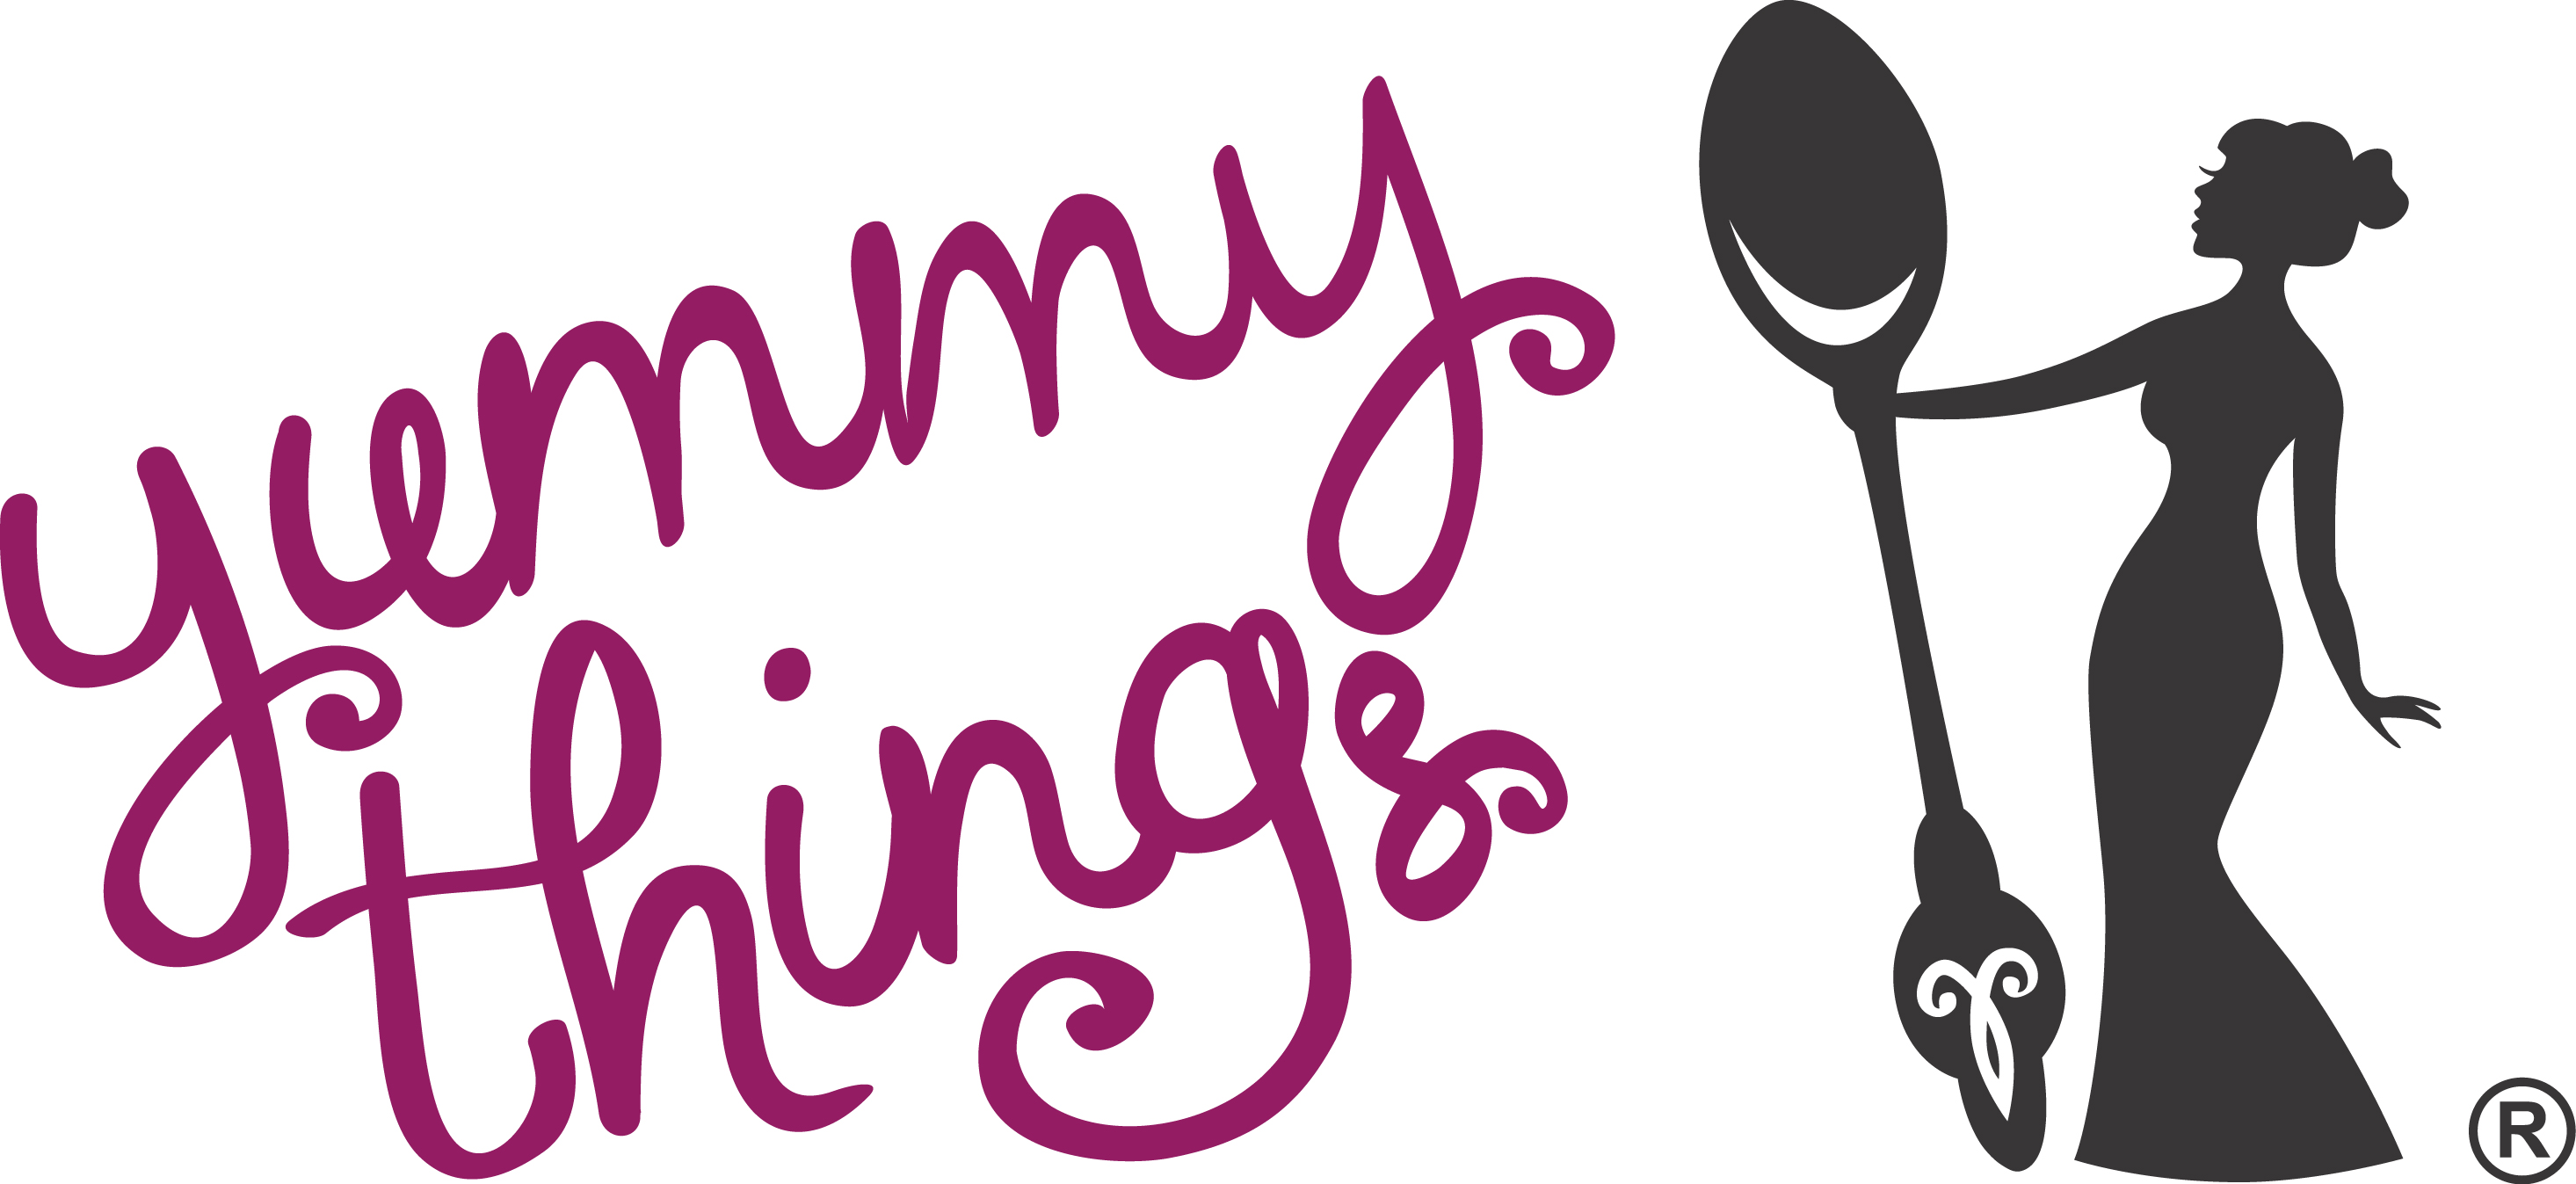 68 yummy smile logo with tongue like yummy concept